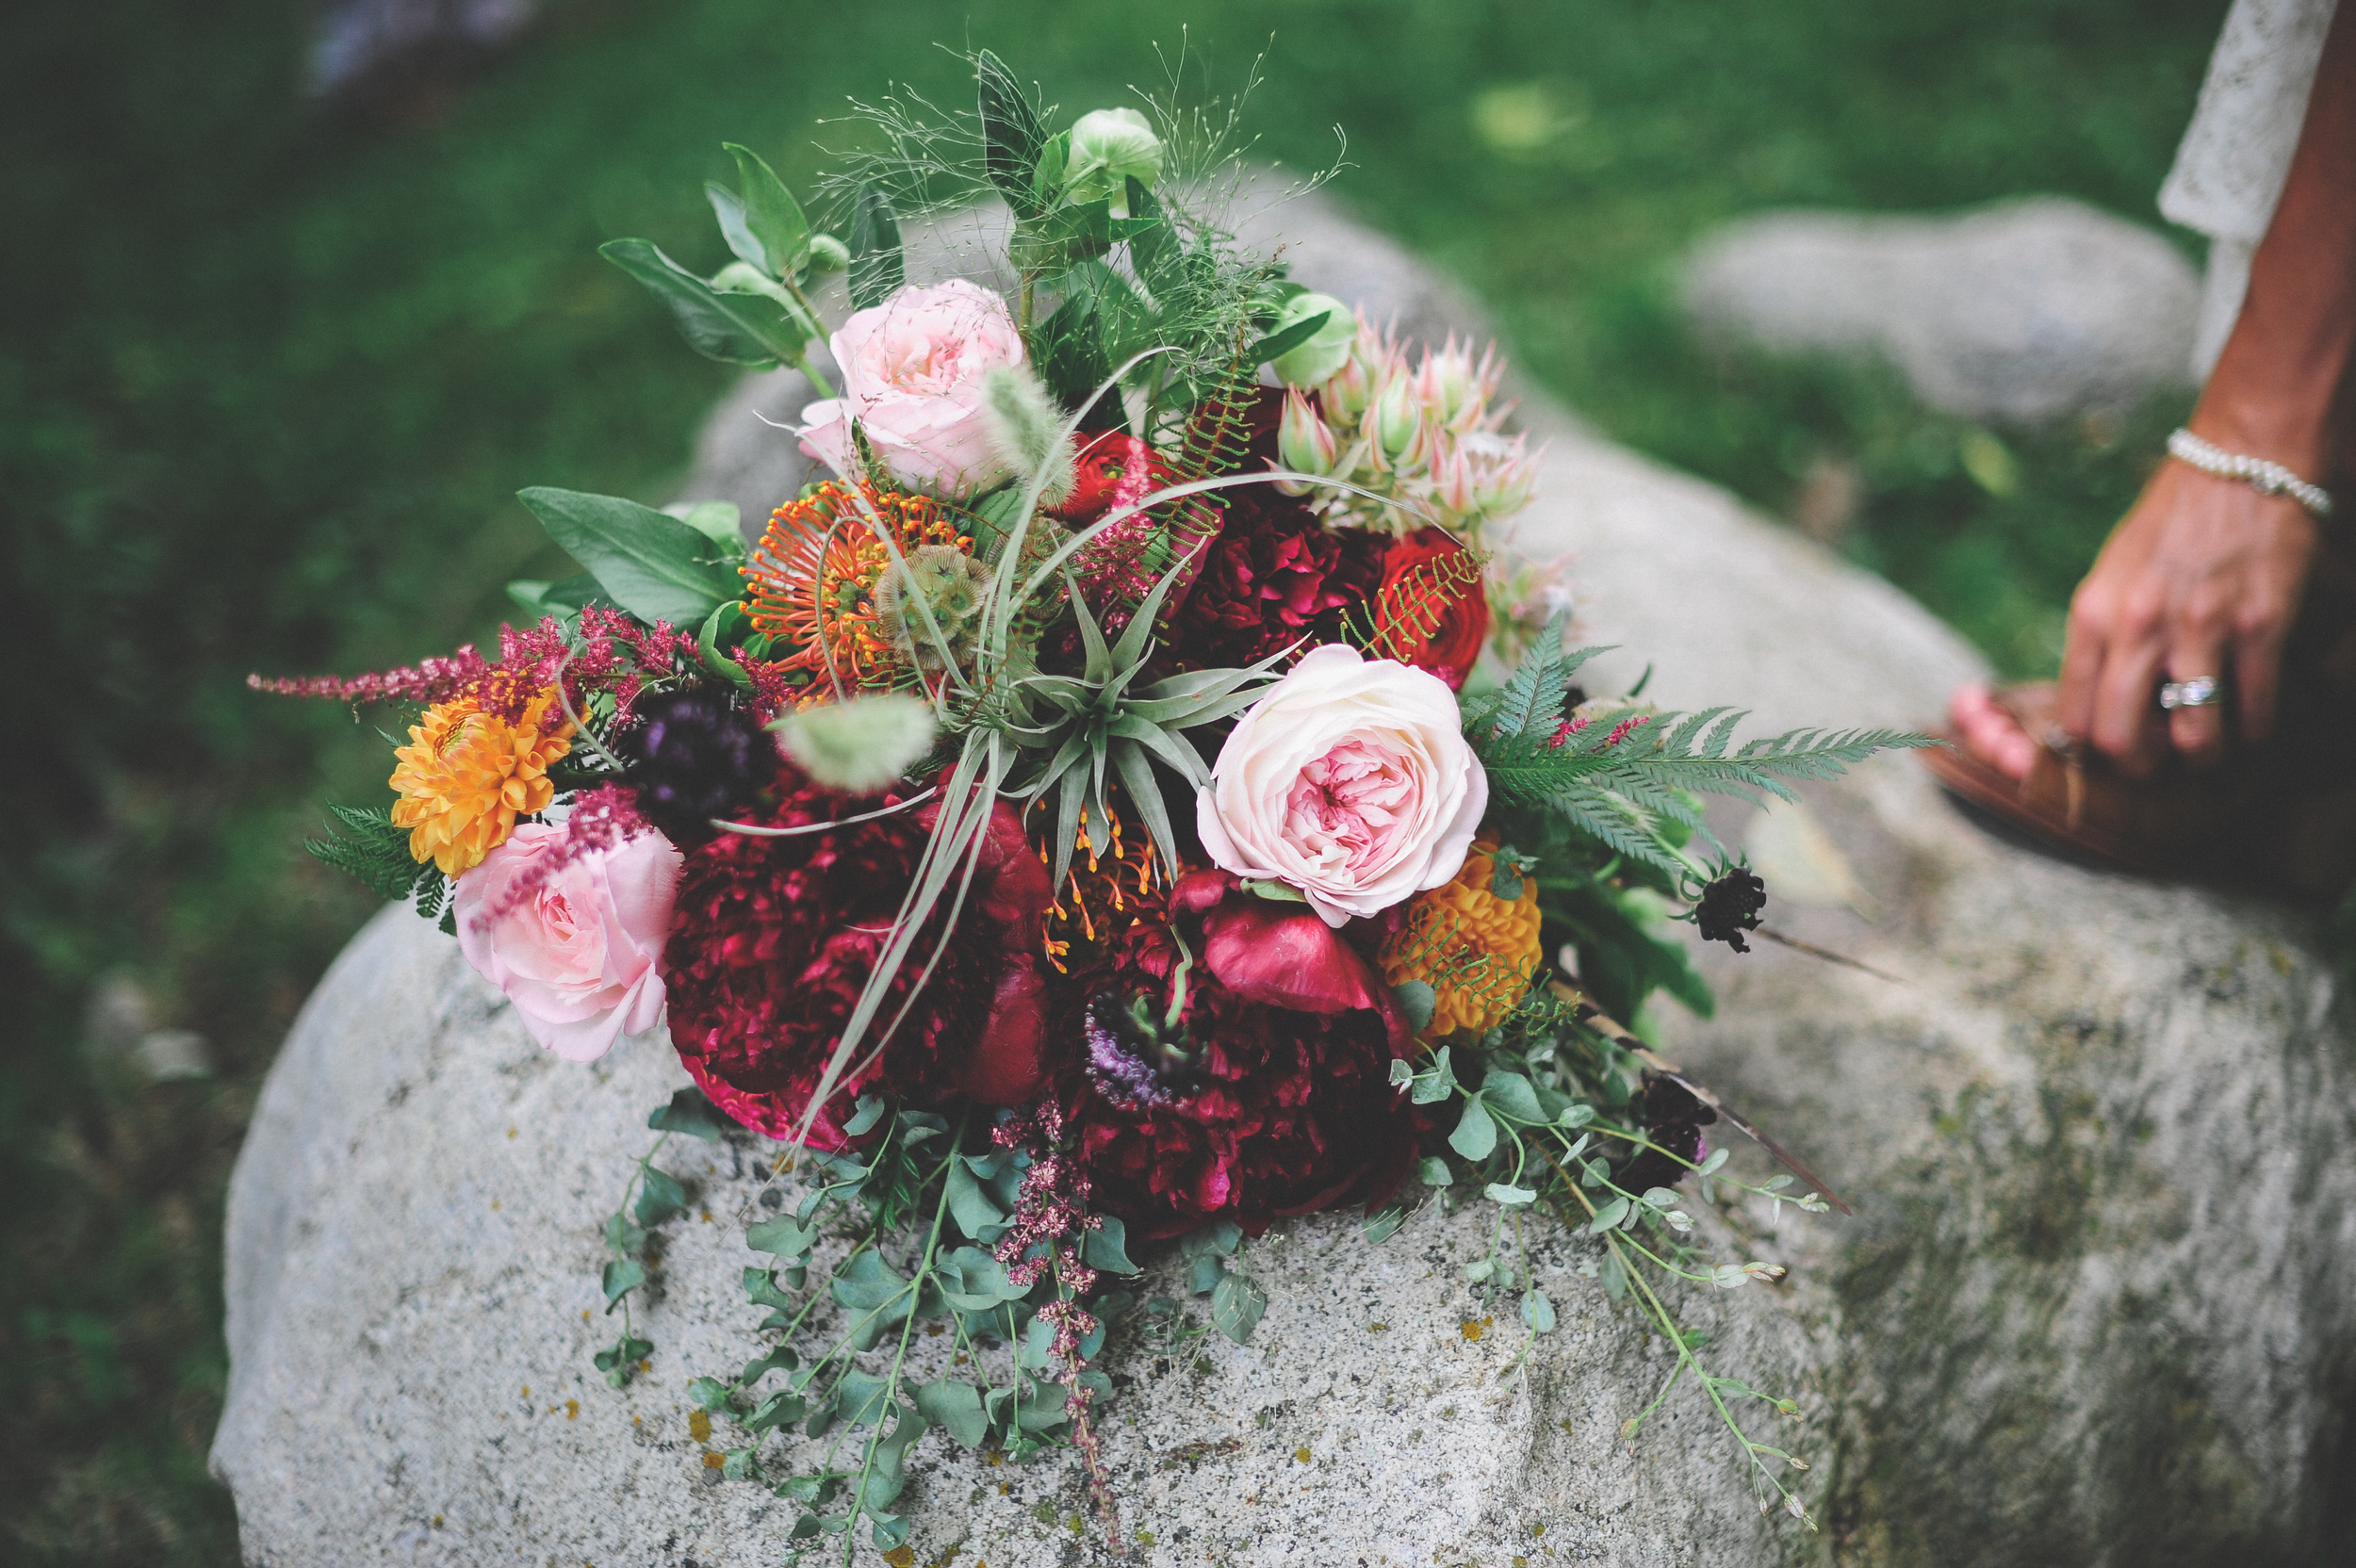 Flowers by Lace and Lilies, Colorado Wedding, Air plant Bouquet, Burgundy Flowers, Bridal Bouquet